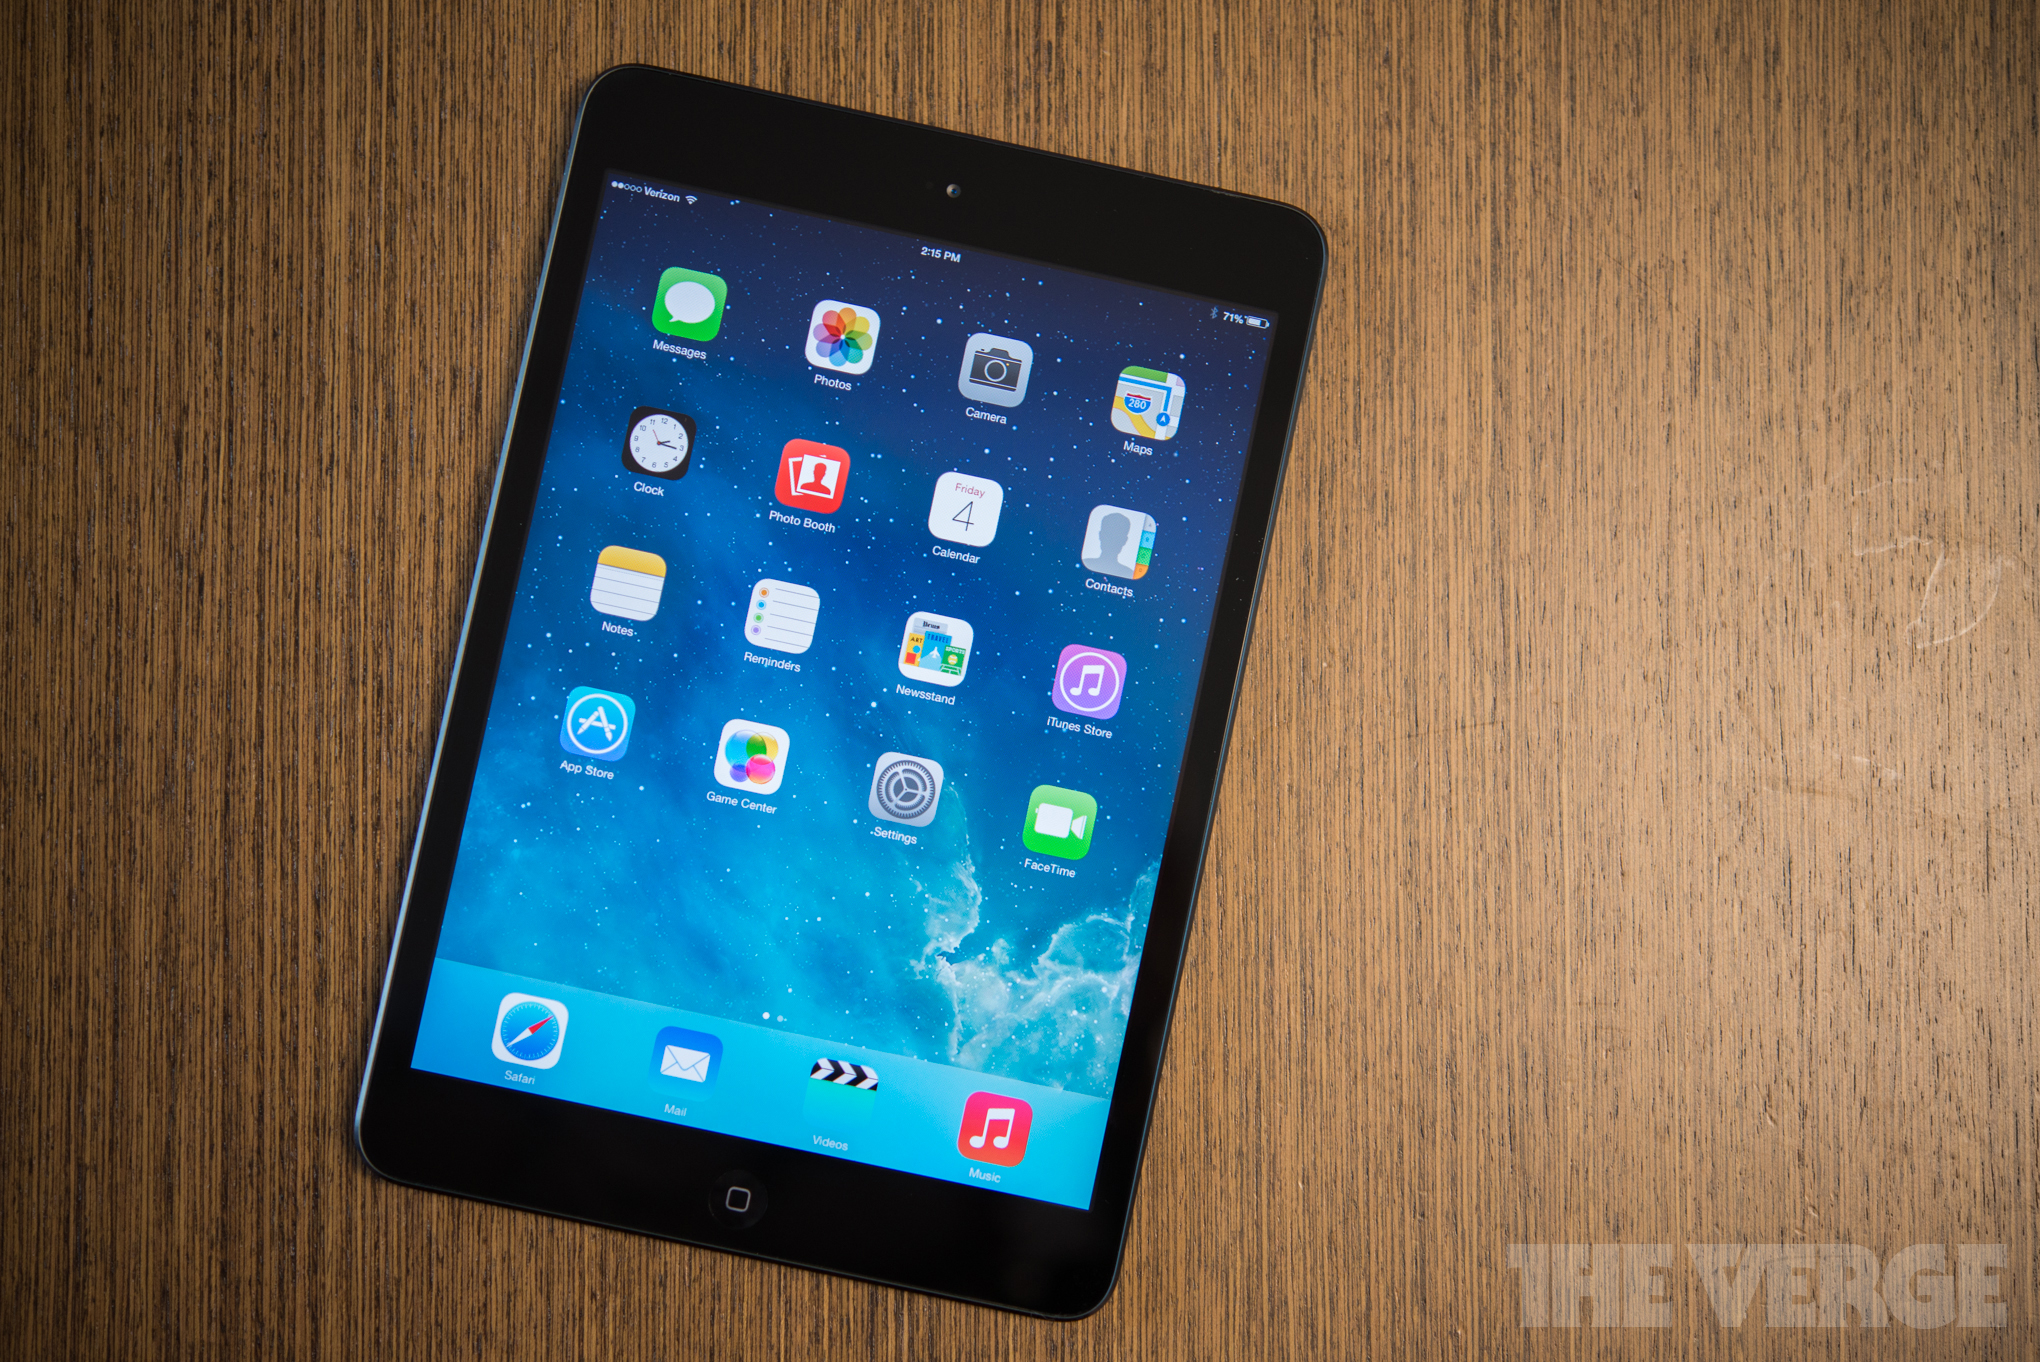 China bans iPads and MacBooks from government use in clampdown on US companies